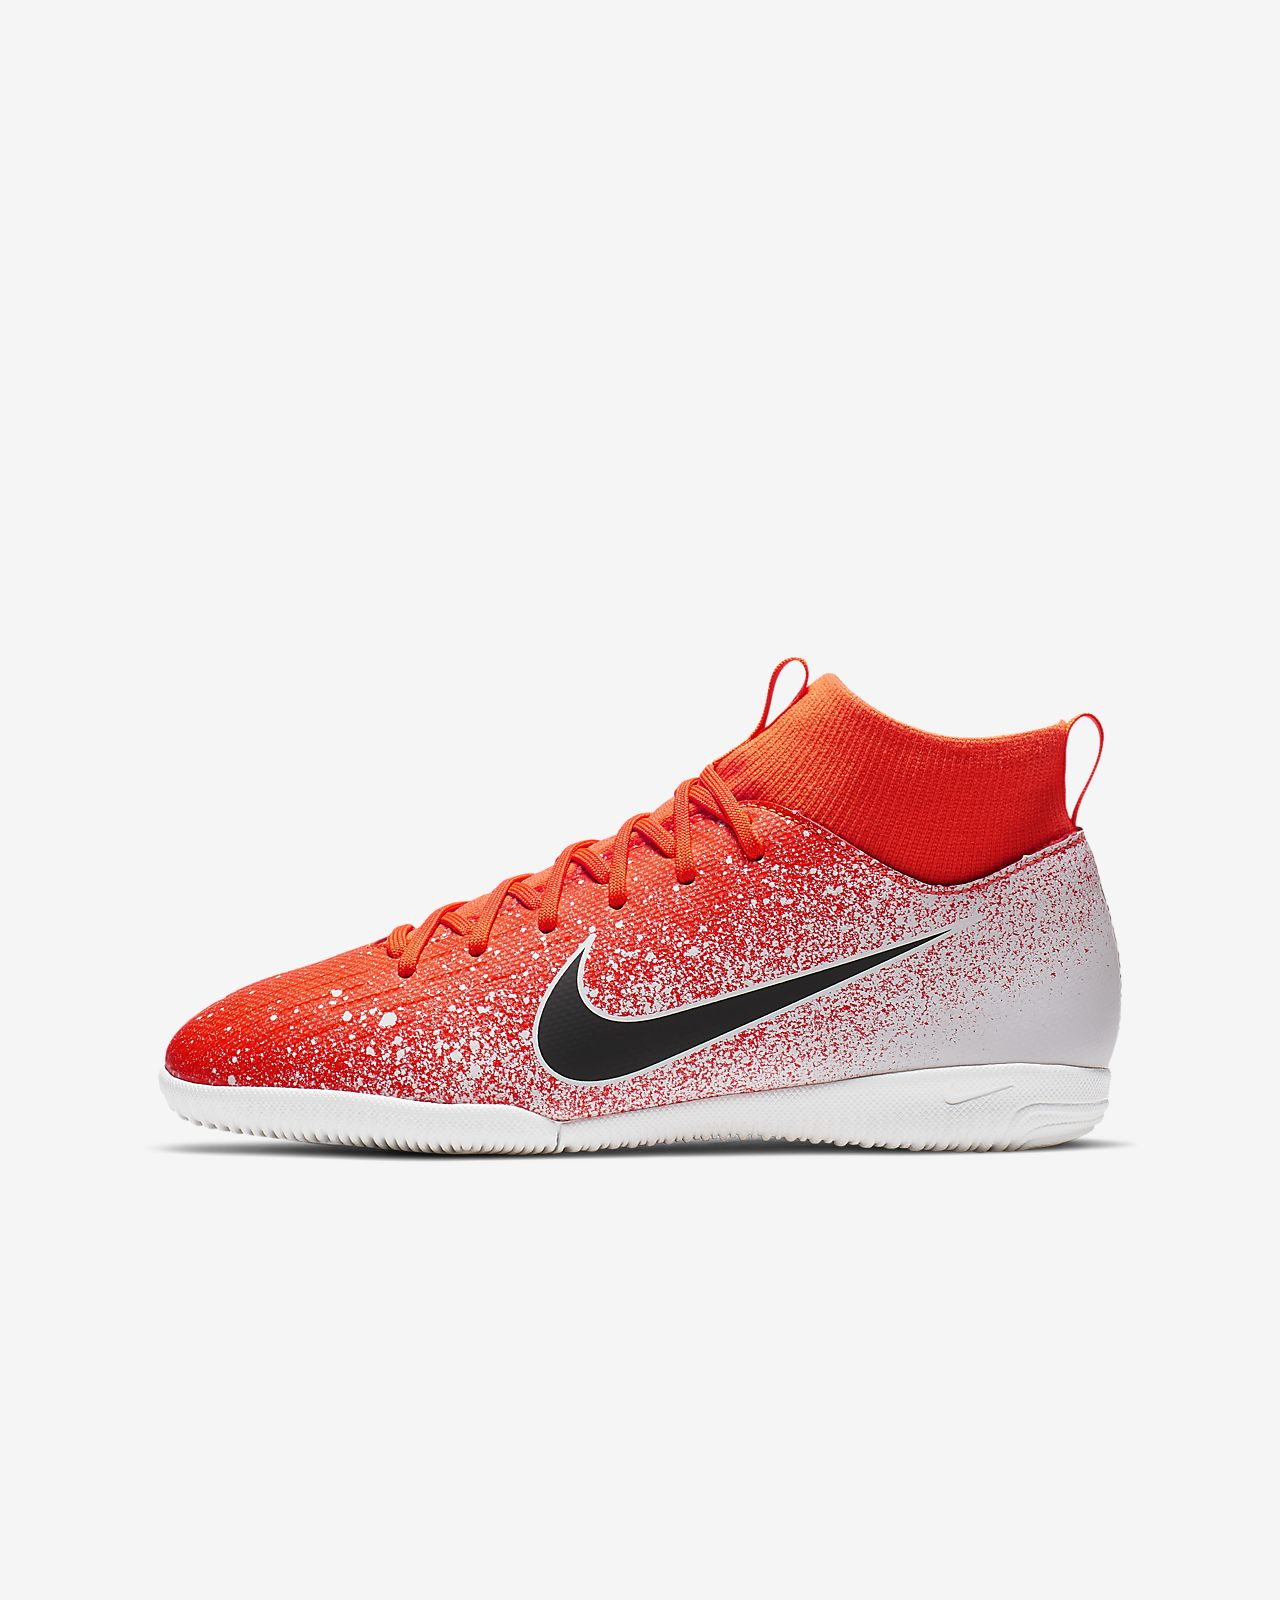 Nike Jr. SuperflyX 6 Academy IC Younger/Older Kids' Indoor/Court Football Boot